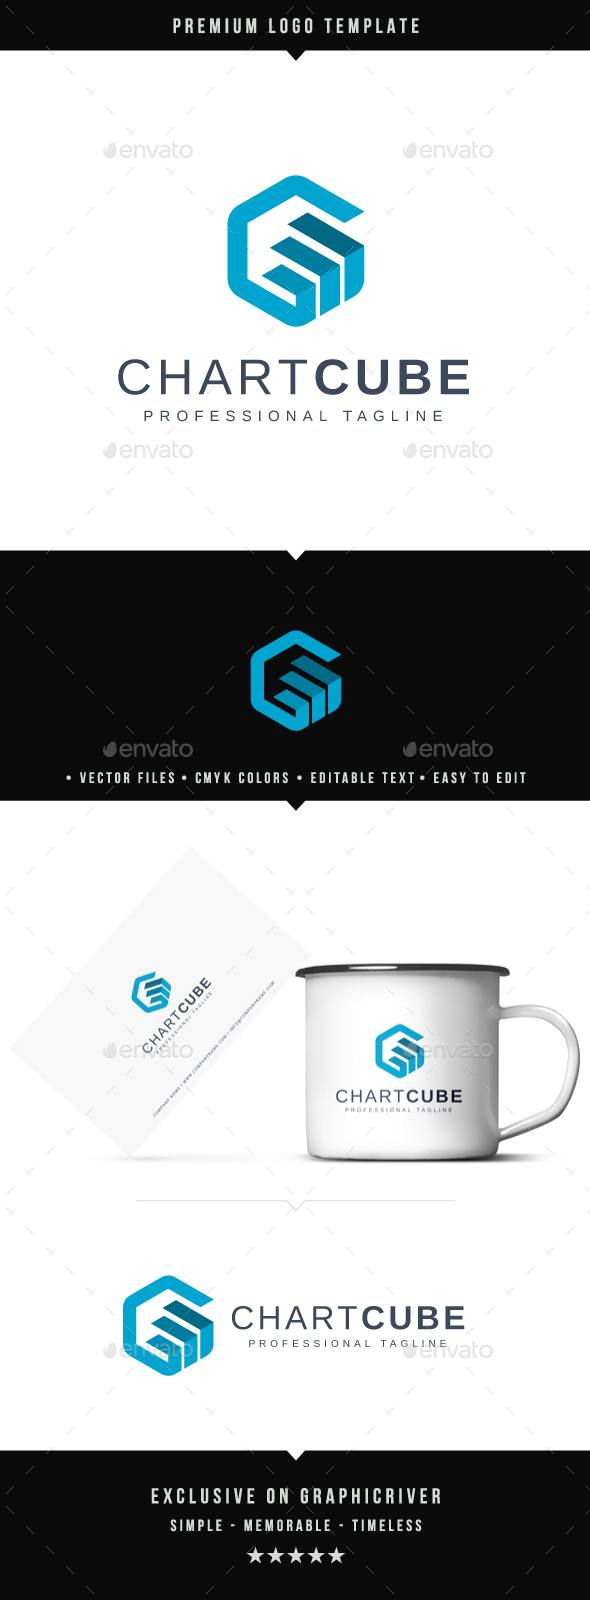 Chart Cube Logo - Abstract Logo Templates